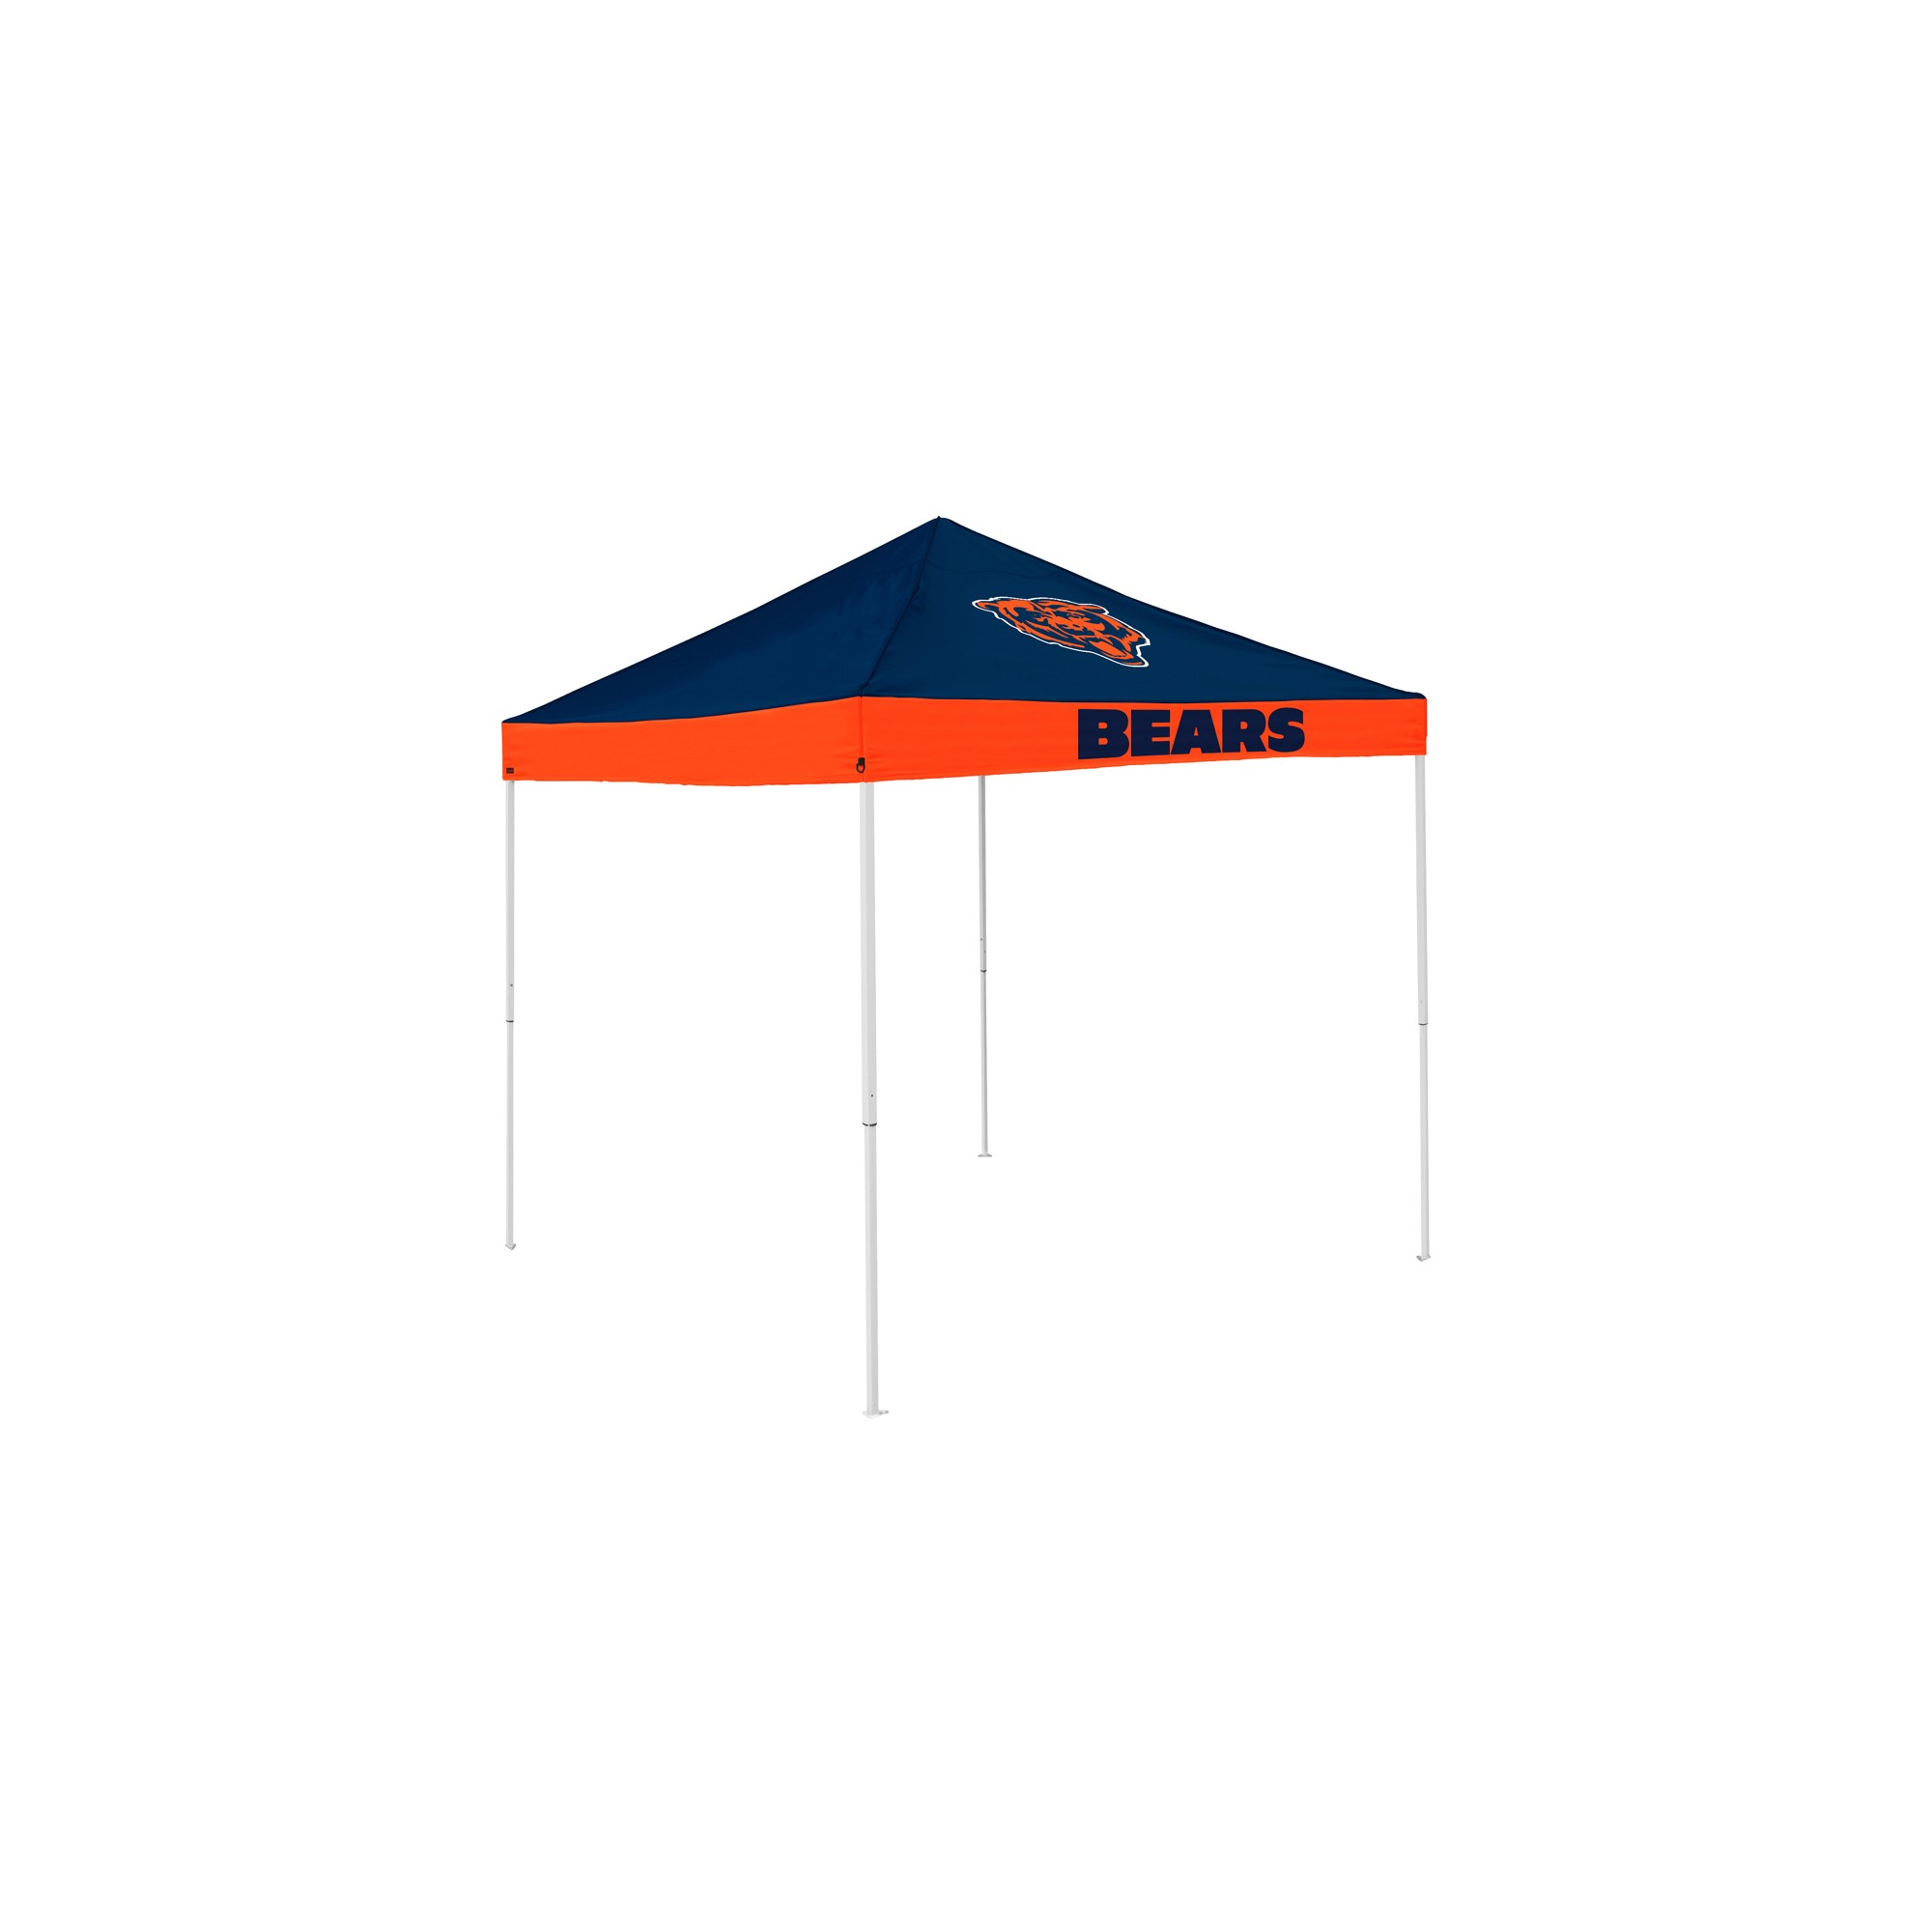 NFL Chicago Bears 9x9u0027 Gameday Canopy Tent  sc 1 st  Pinterest & NFL Chicago Bears 9x9u0027 Gameday Canopy Tent | Canopy tent Nfl ...